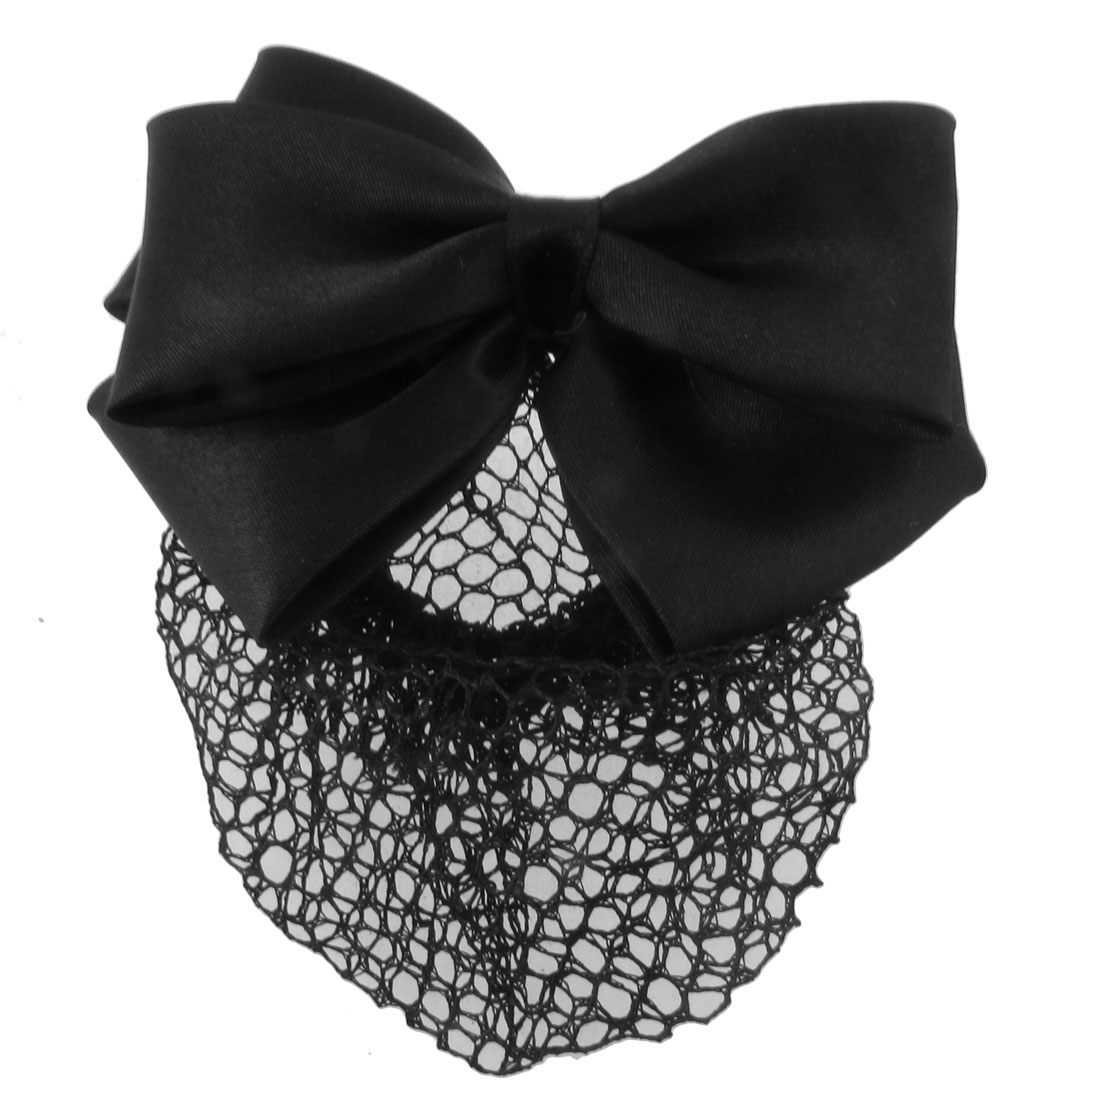 Black Three Layers Polyester Bowknot Snood Net Barrette Metal Hair Clip for Women